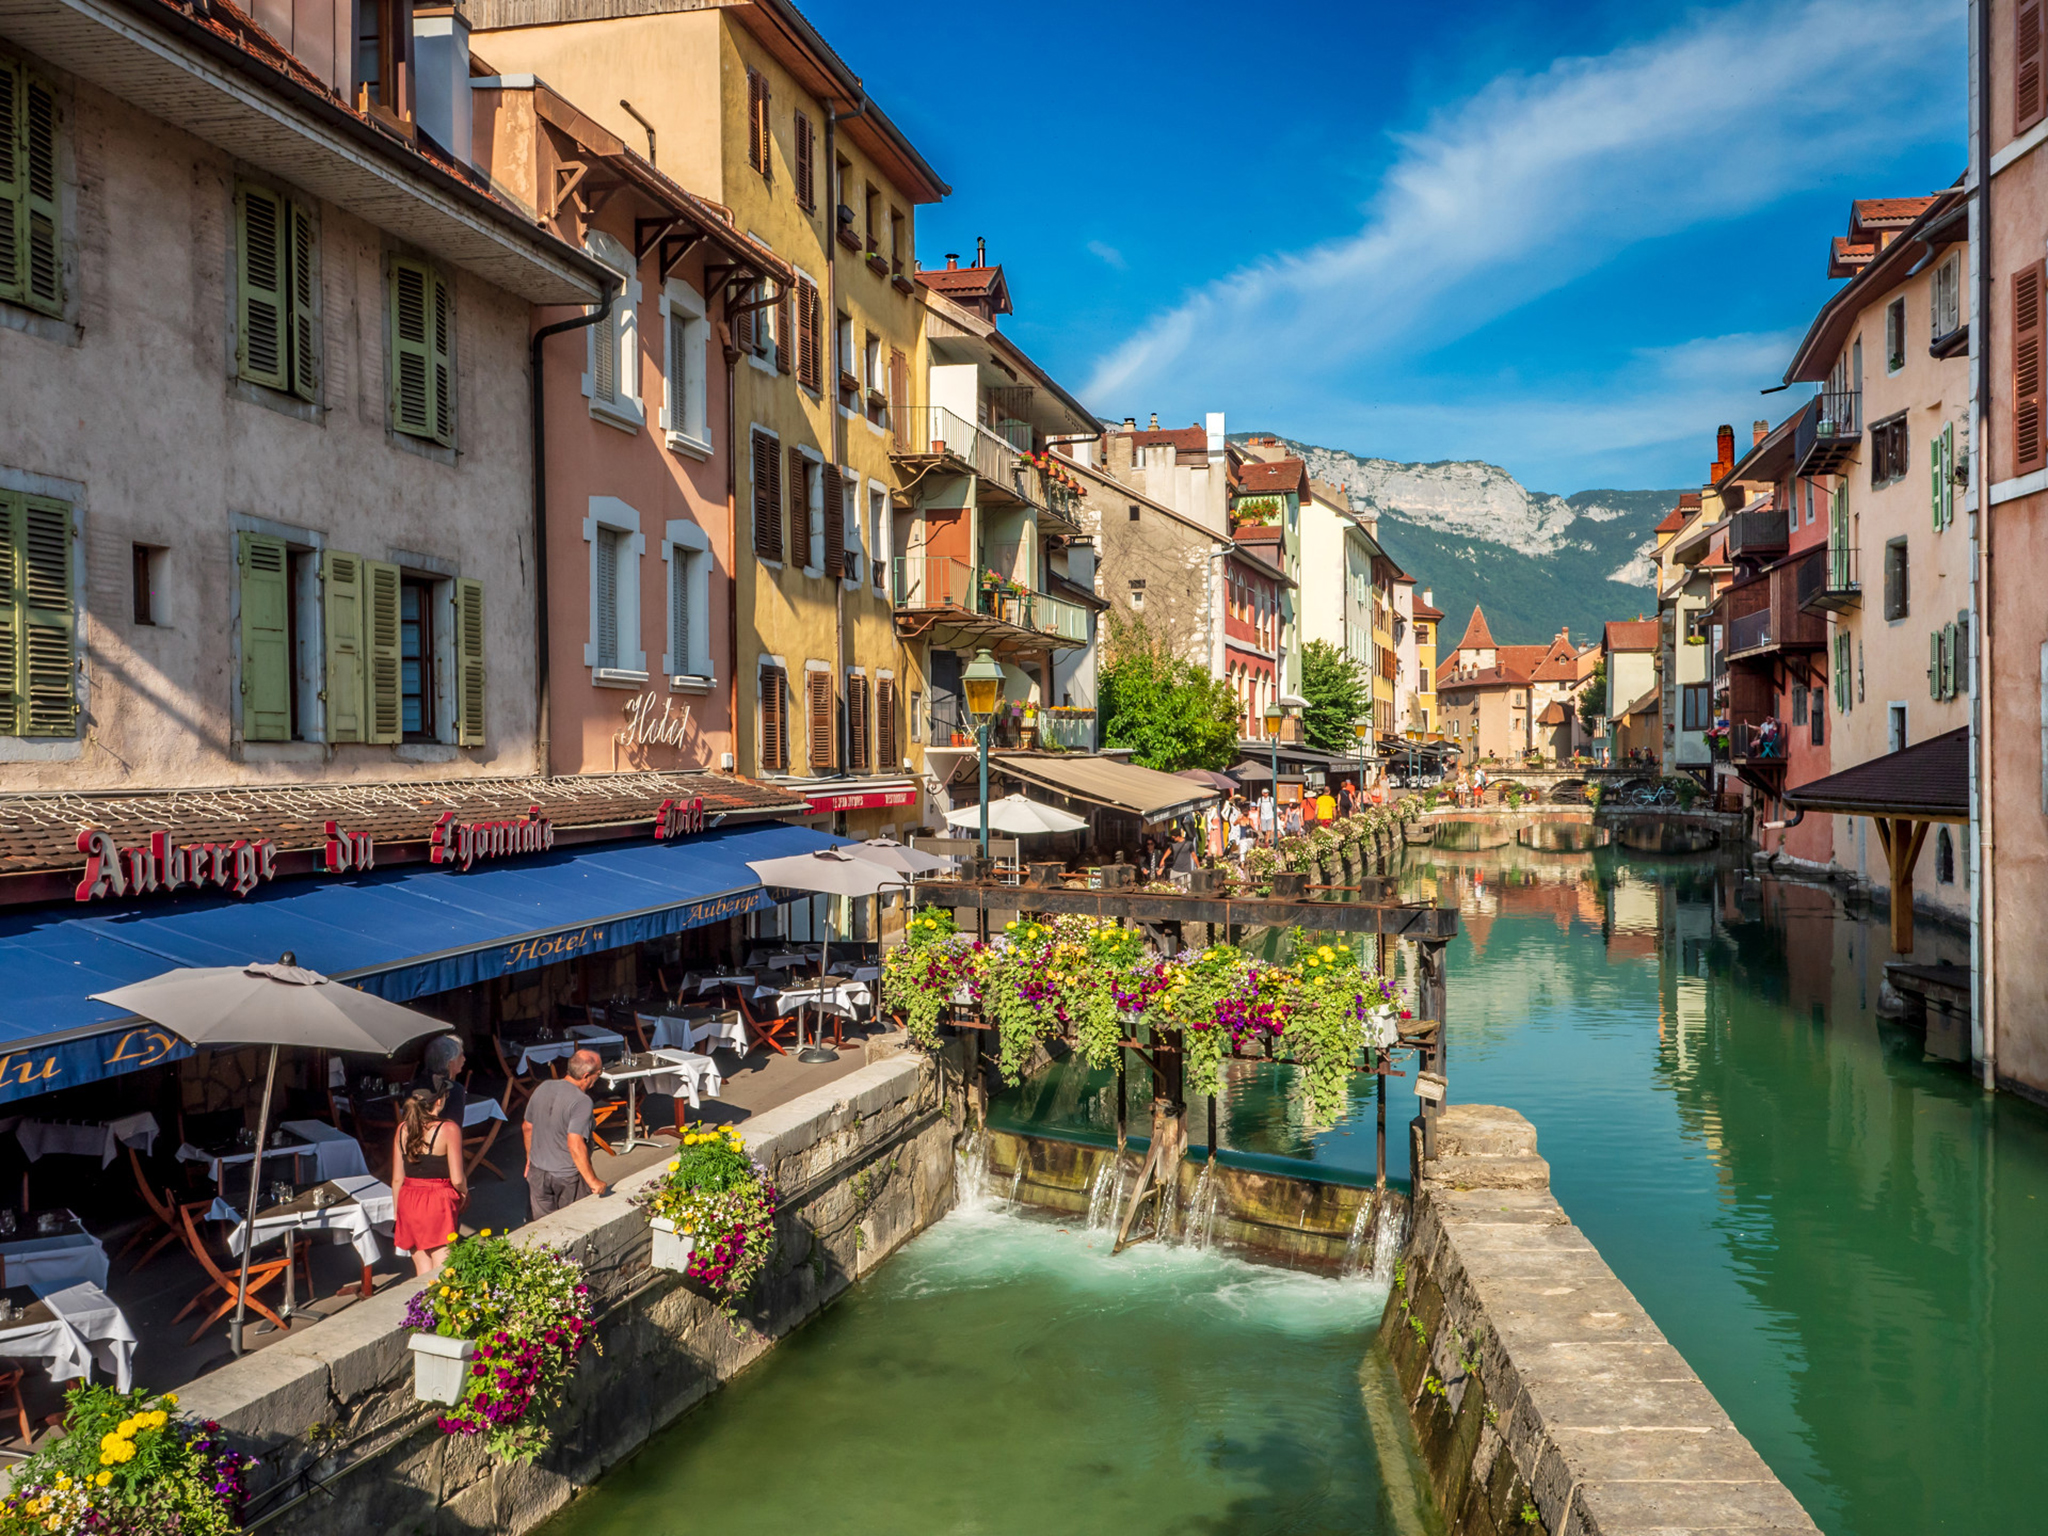 kt_2020_370_Keytours_excursions_Swisstours_annecy3_2048_10